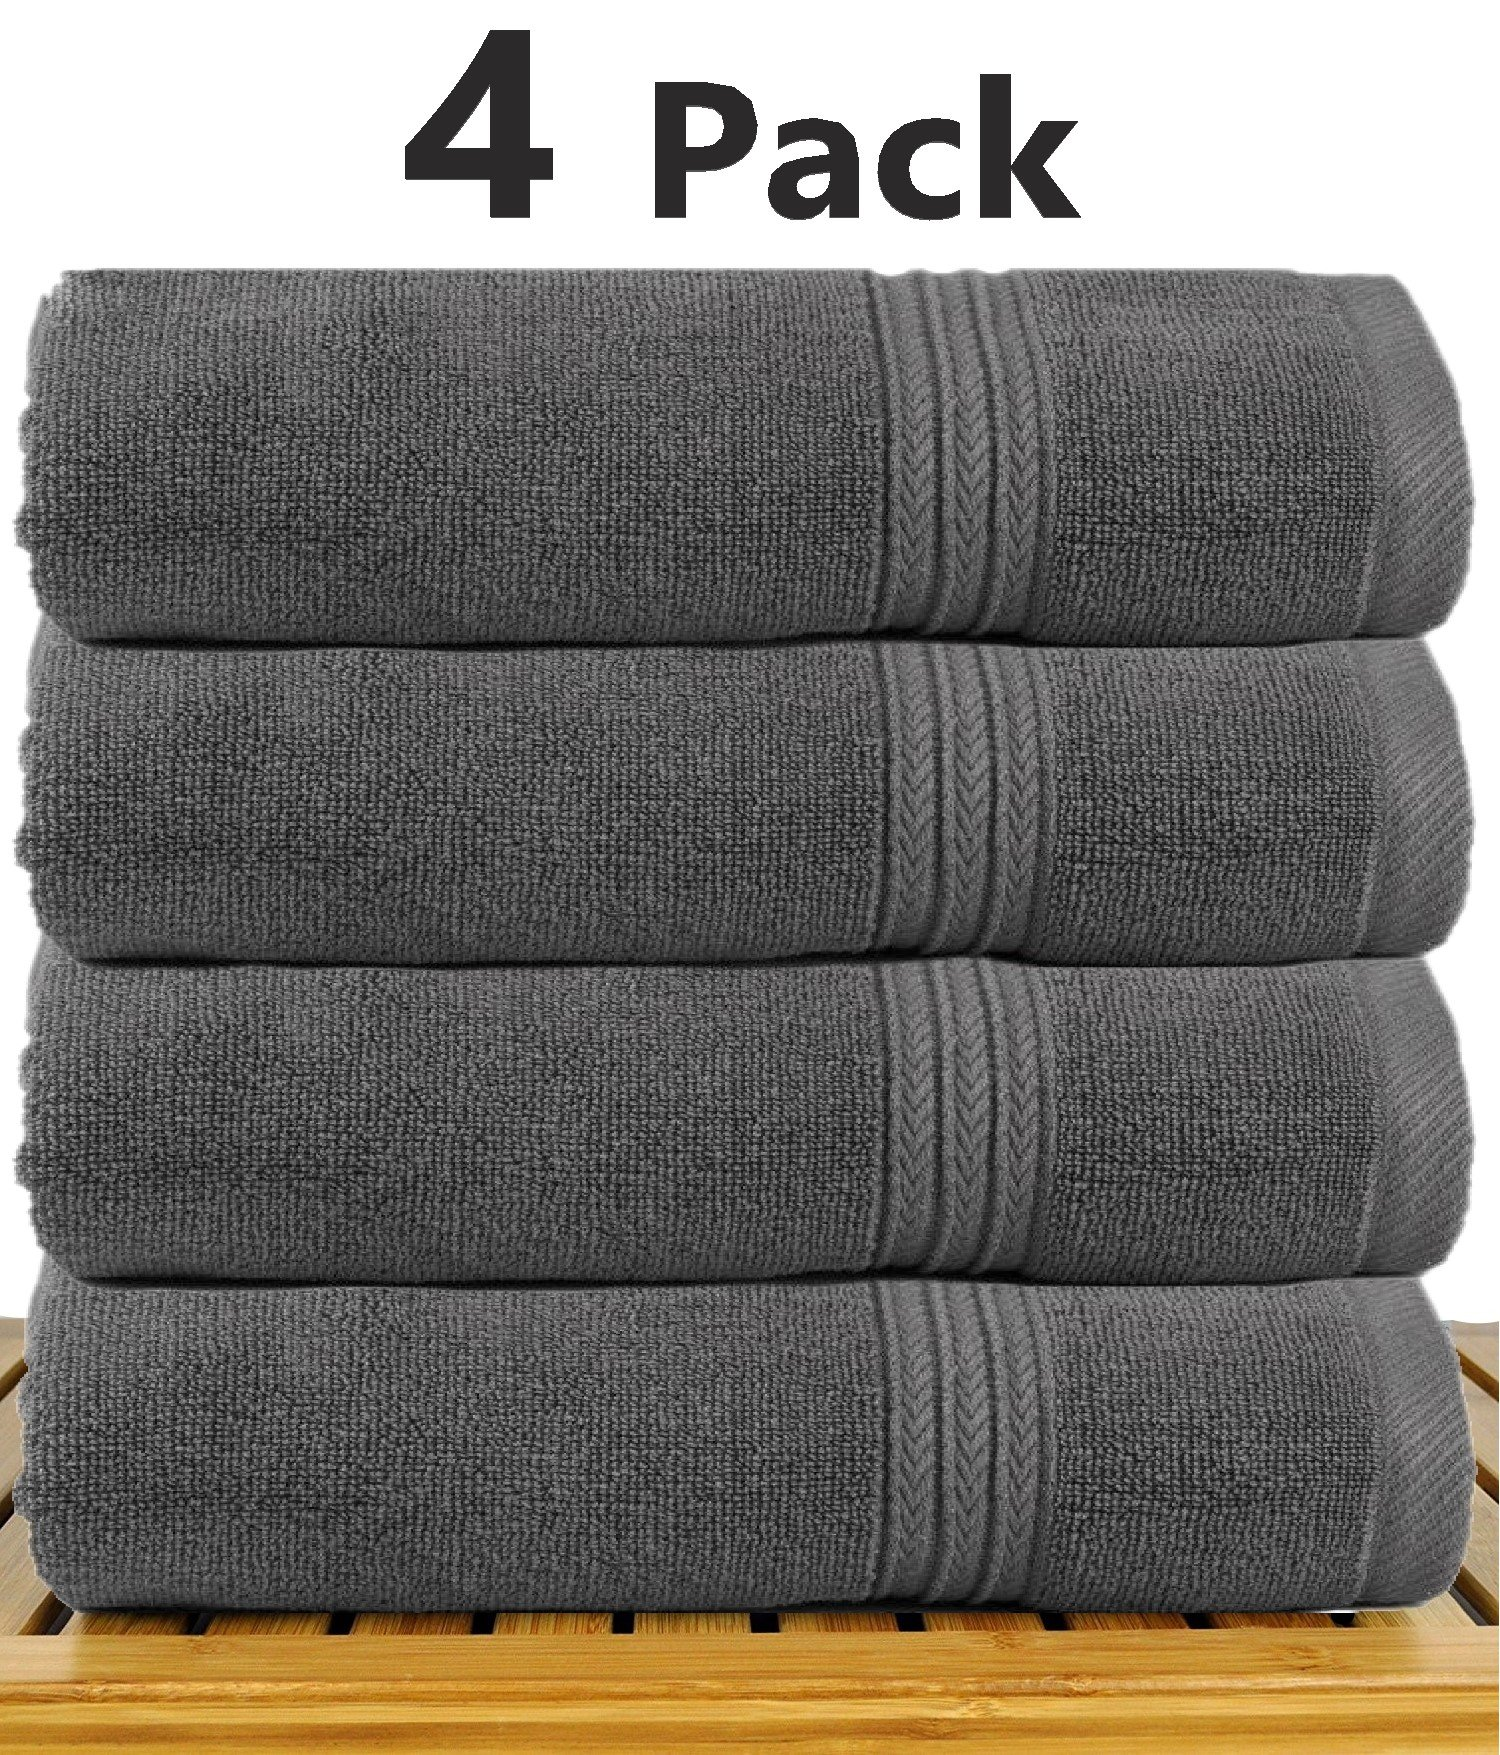 TowelPro Luxury Premium Soft 100% Cotton Highly Absorbent Machine Washable Multi-Purpose, Hotel, Spa, Home, Large Hand Towels 16'' x 28'' (Gray)